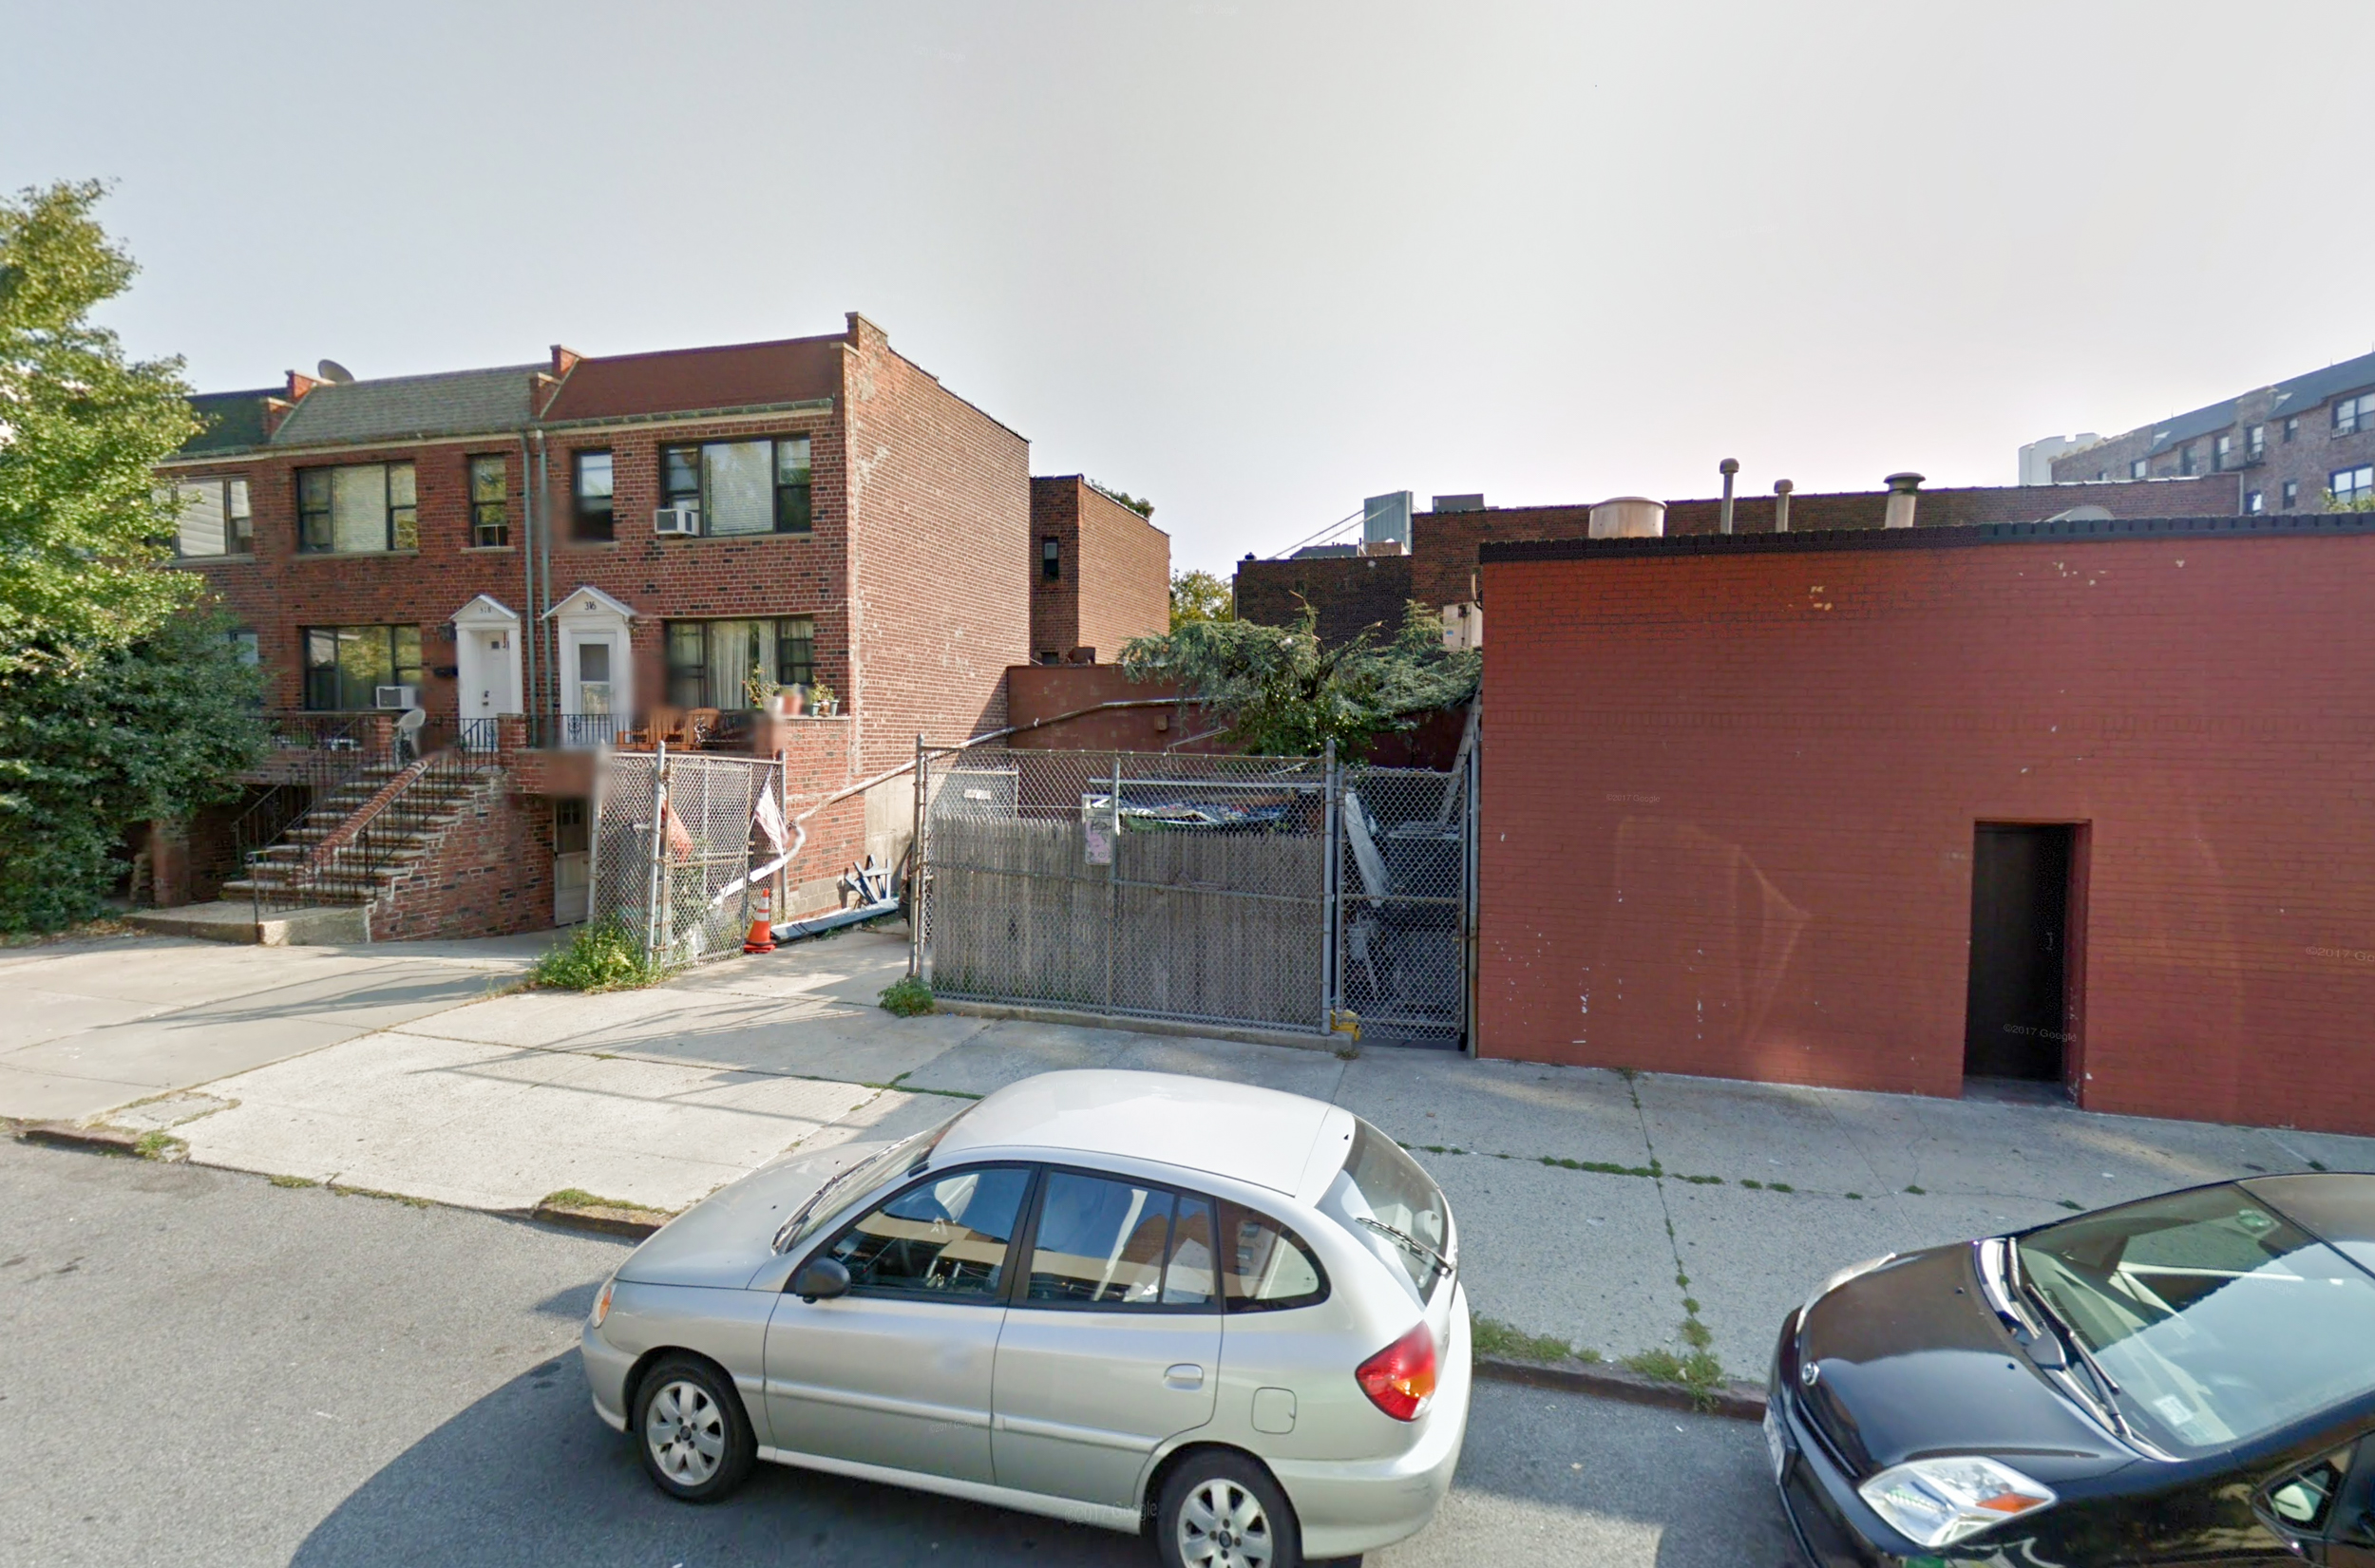 312 97th Street, via Google Maps